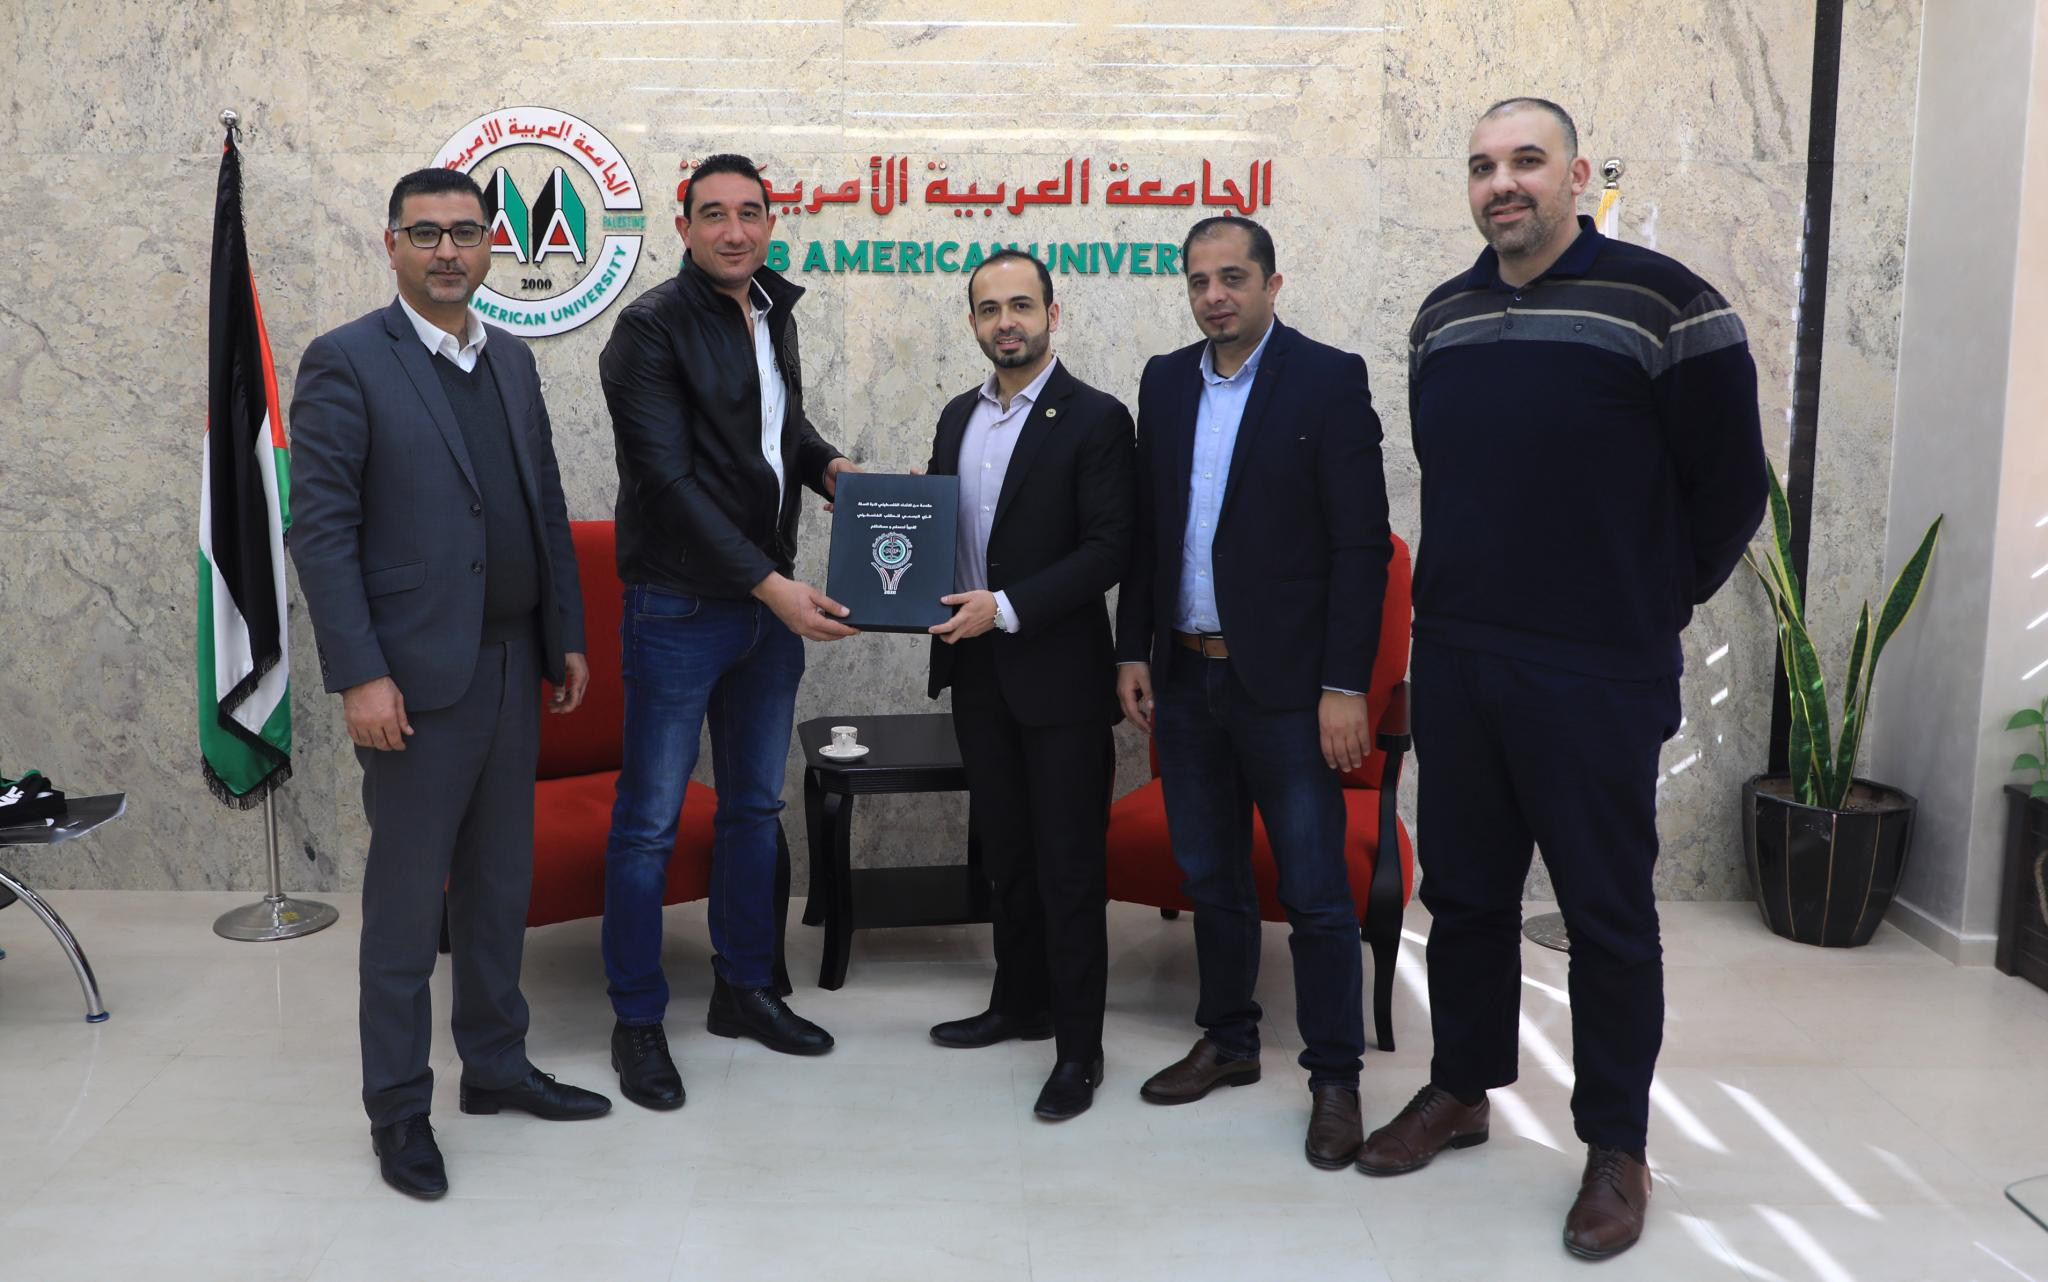 AAUP and the Palestinian Basketball Federation Preparing for Al Feda'i Game against Sri Lanka Team